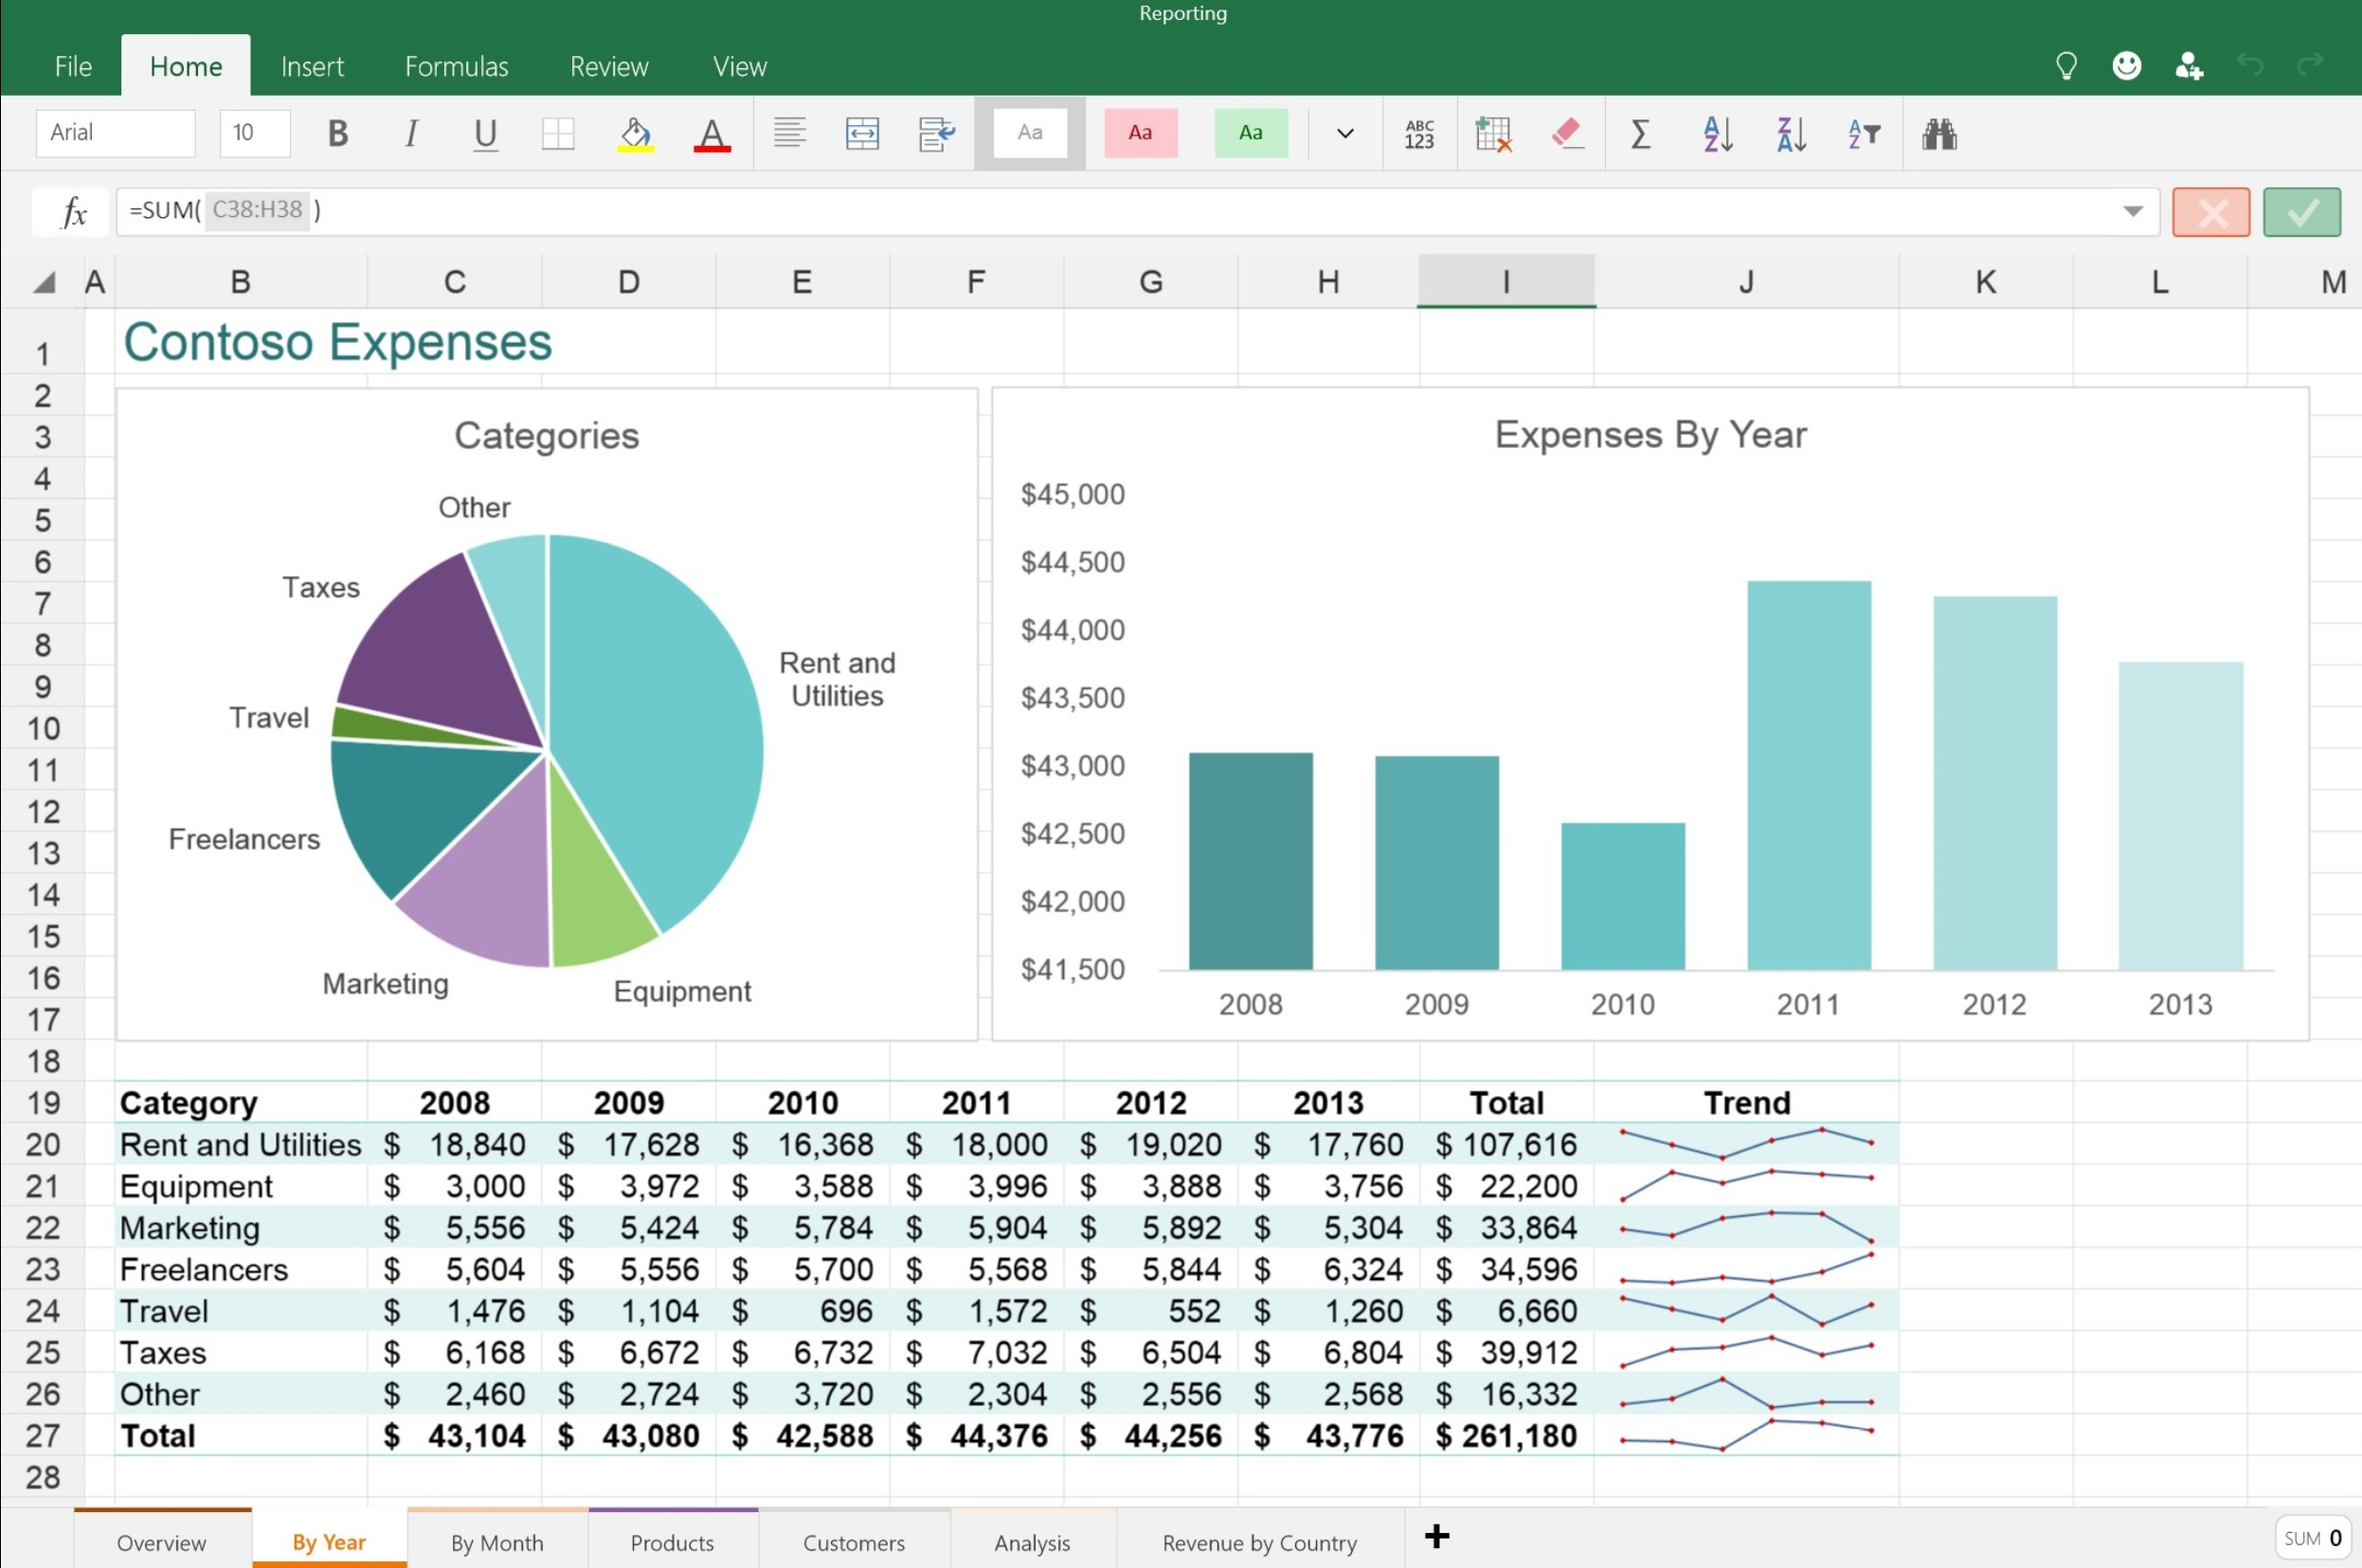 Ediblewildsus  Terrific Features Available In The New Word Excel And Powerpoint Apps For  With Magnificent Excel Touch App  With Awesome Excel Binary Workbook Also Writing Macros In Excel In Addition Excel Vba Msgbox And Excel Vlookup Multiple Criteria As Well As How To Make A Schedule In Excel Additionally Excel Cos From Mspowerusercom With Ediblewildsus  Magnificent Features Available In The New Word Excel And Powerpoint Apps For  With Awesome Excel Touch App  And Terrific Excel Binary Workbook Also Writing Macros In Excel In Addition Excel Vba Msgbox From Mspowerusercom